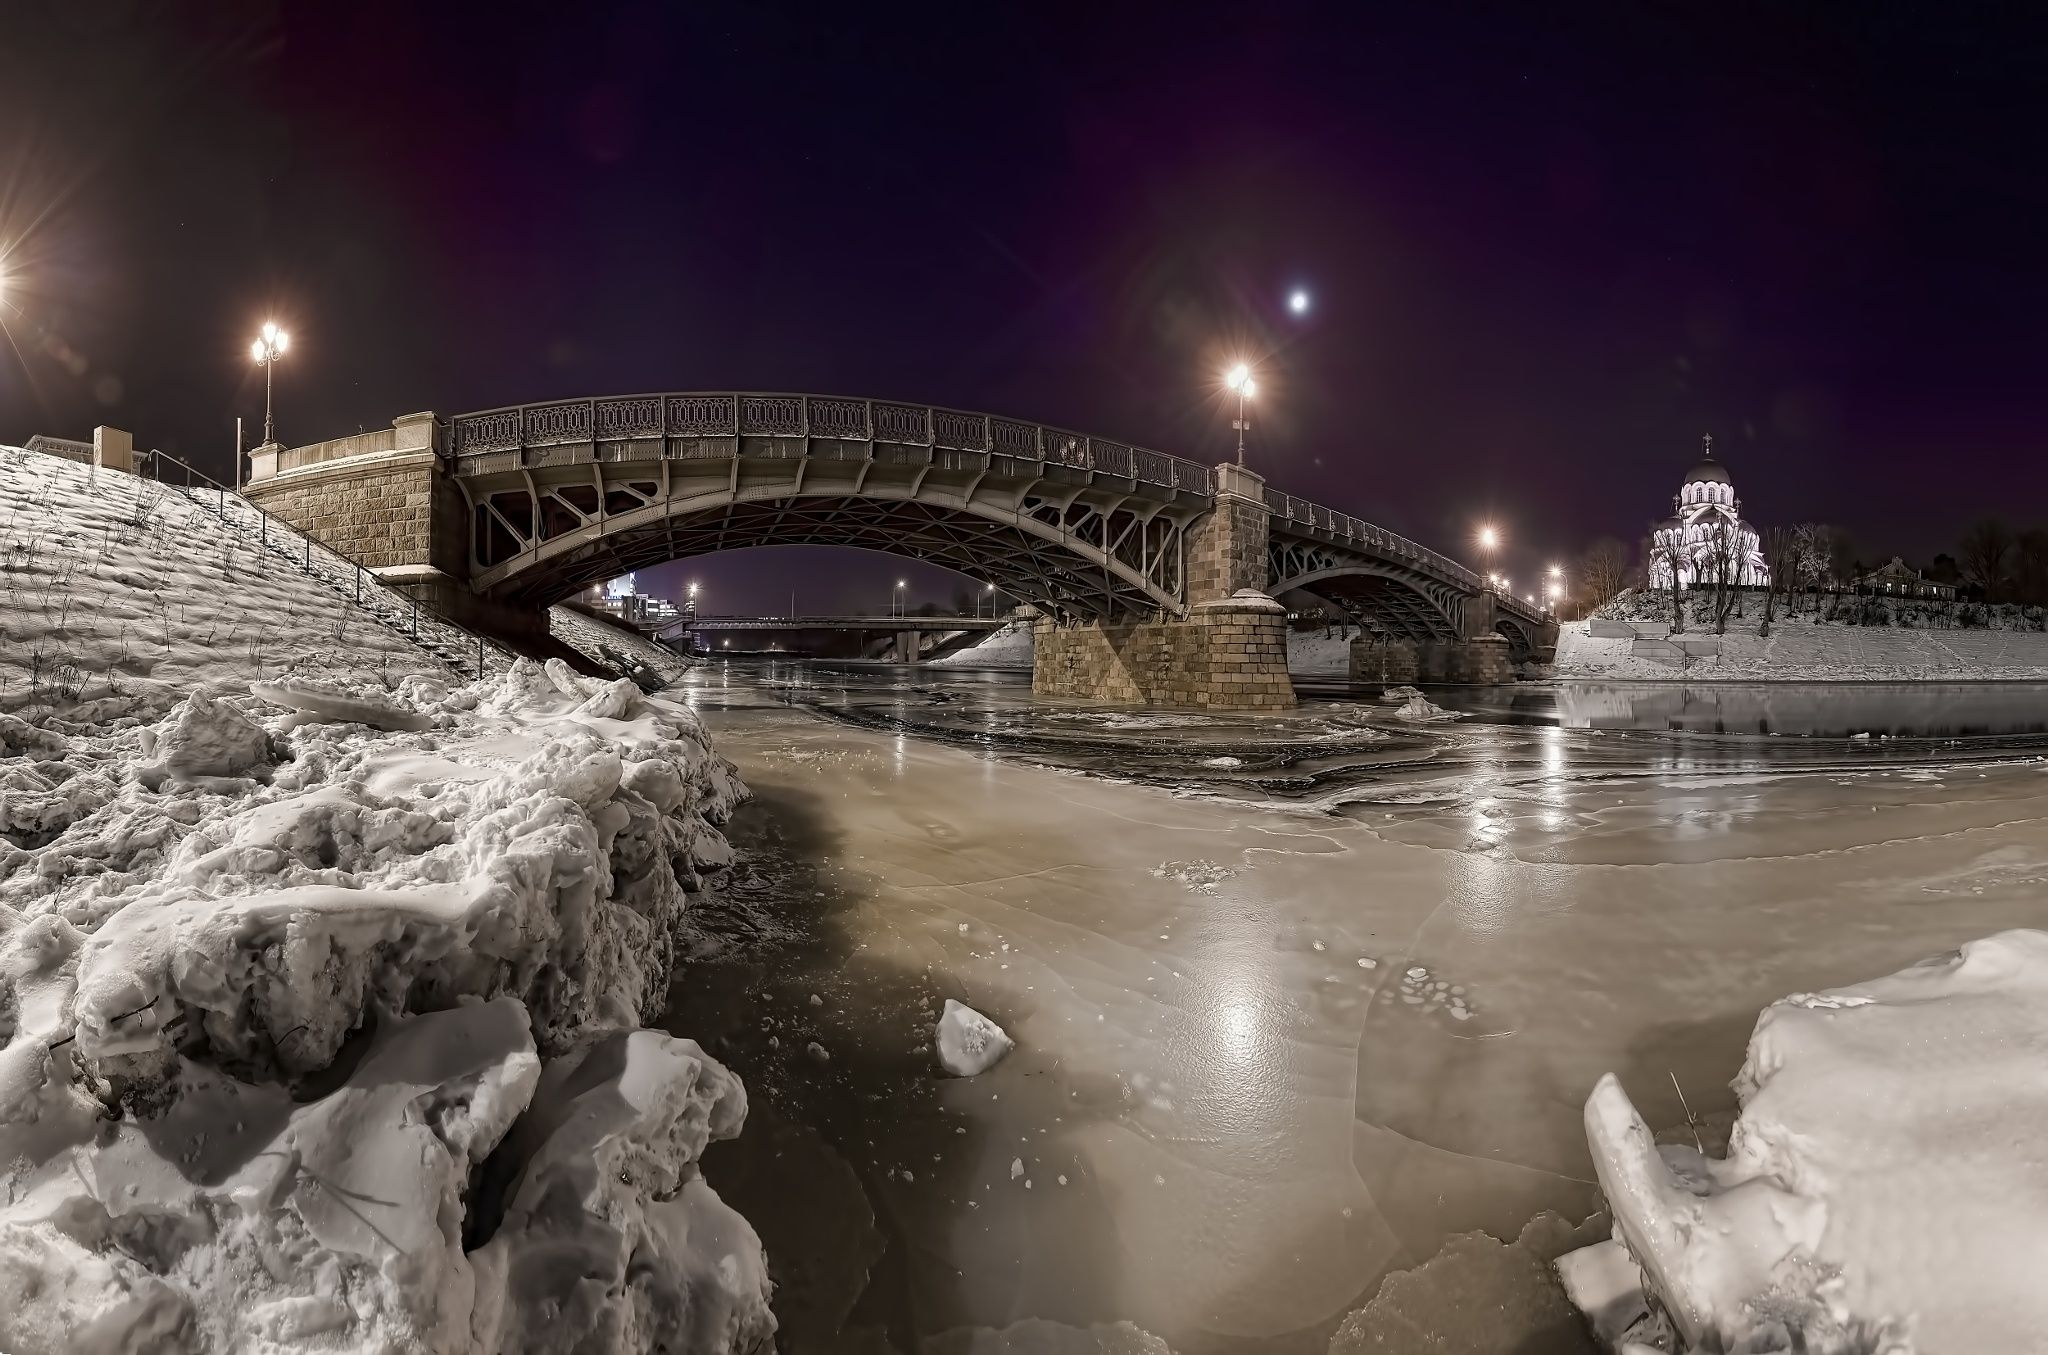 Bridge  by Laimonas Ciūnys on 500px